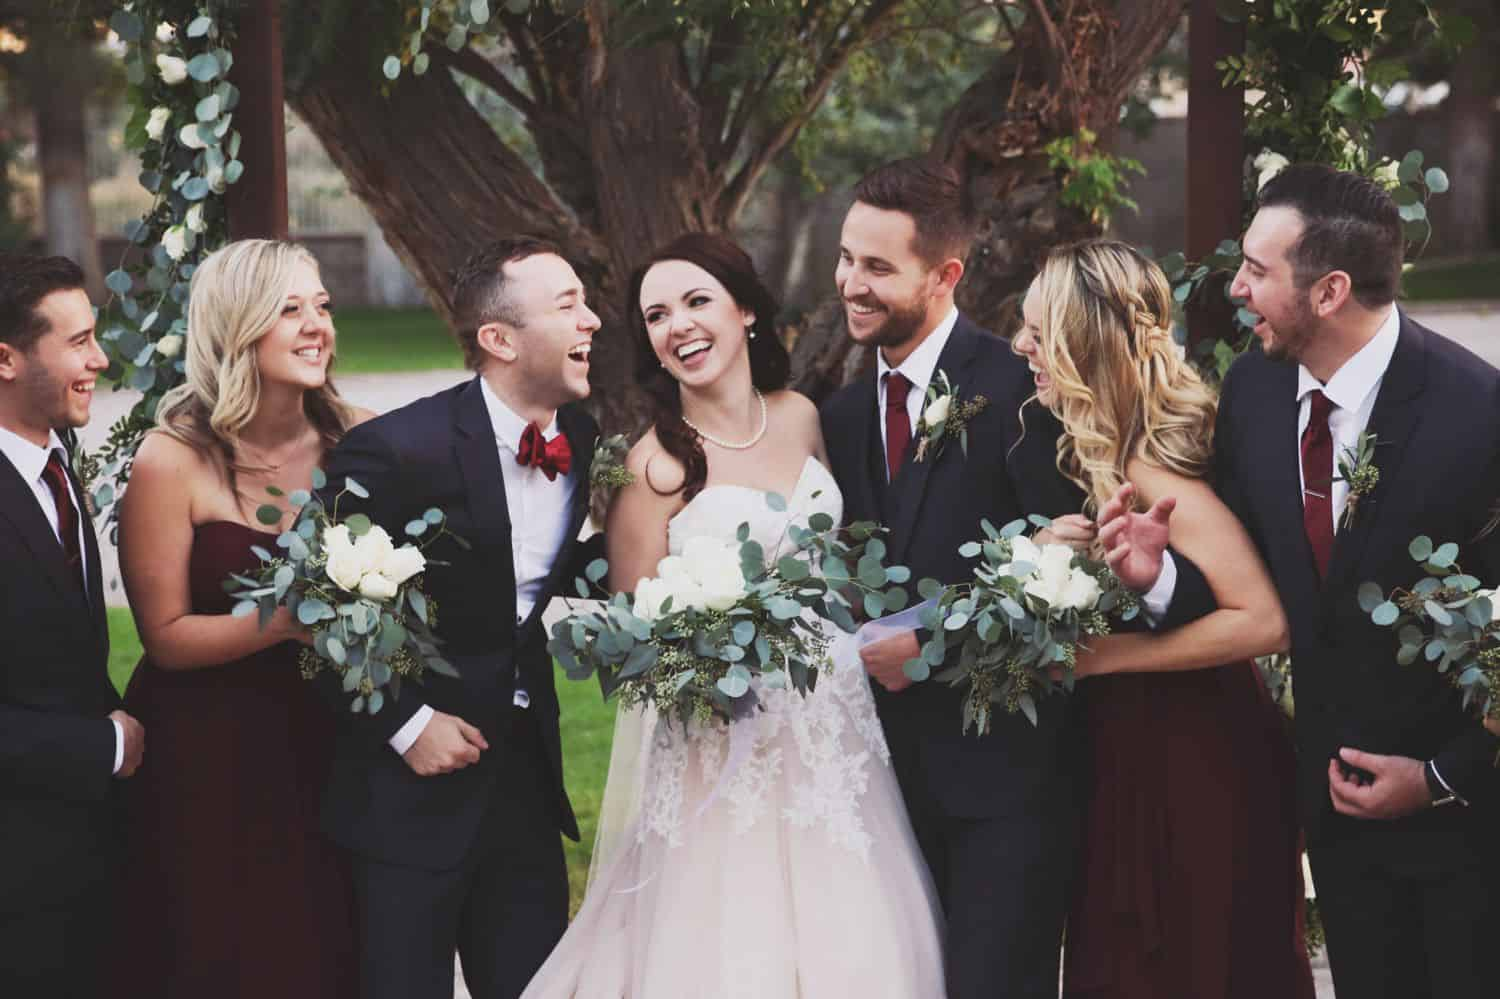 A wedding party stands shoulder-to-shoulder laughing expressively.